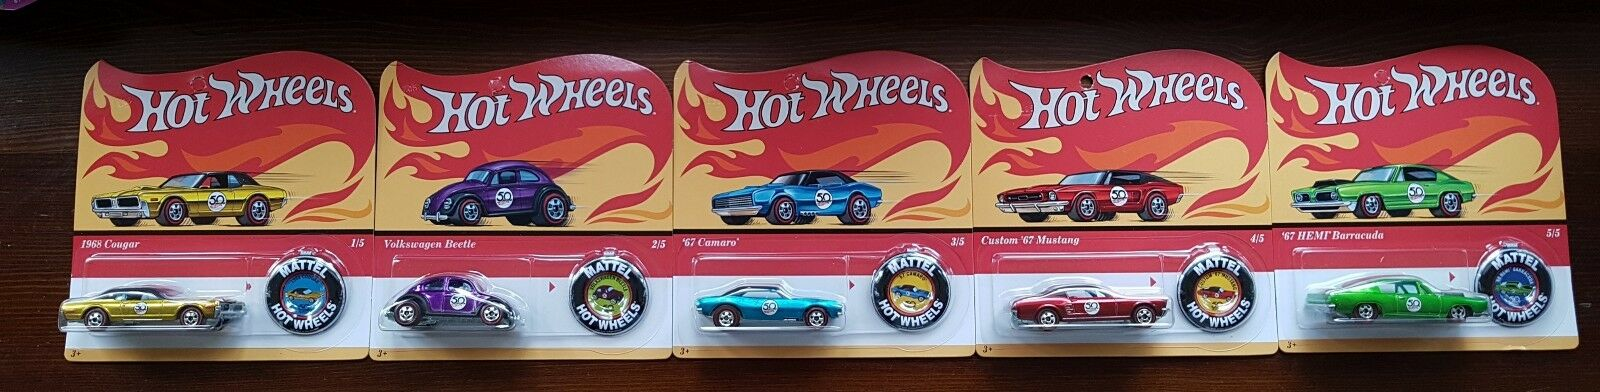 Hot Wheels 50th Anniversary Redlines Series . Mustang VW Beetle Cougar Camaro